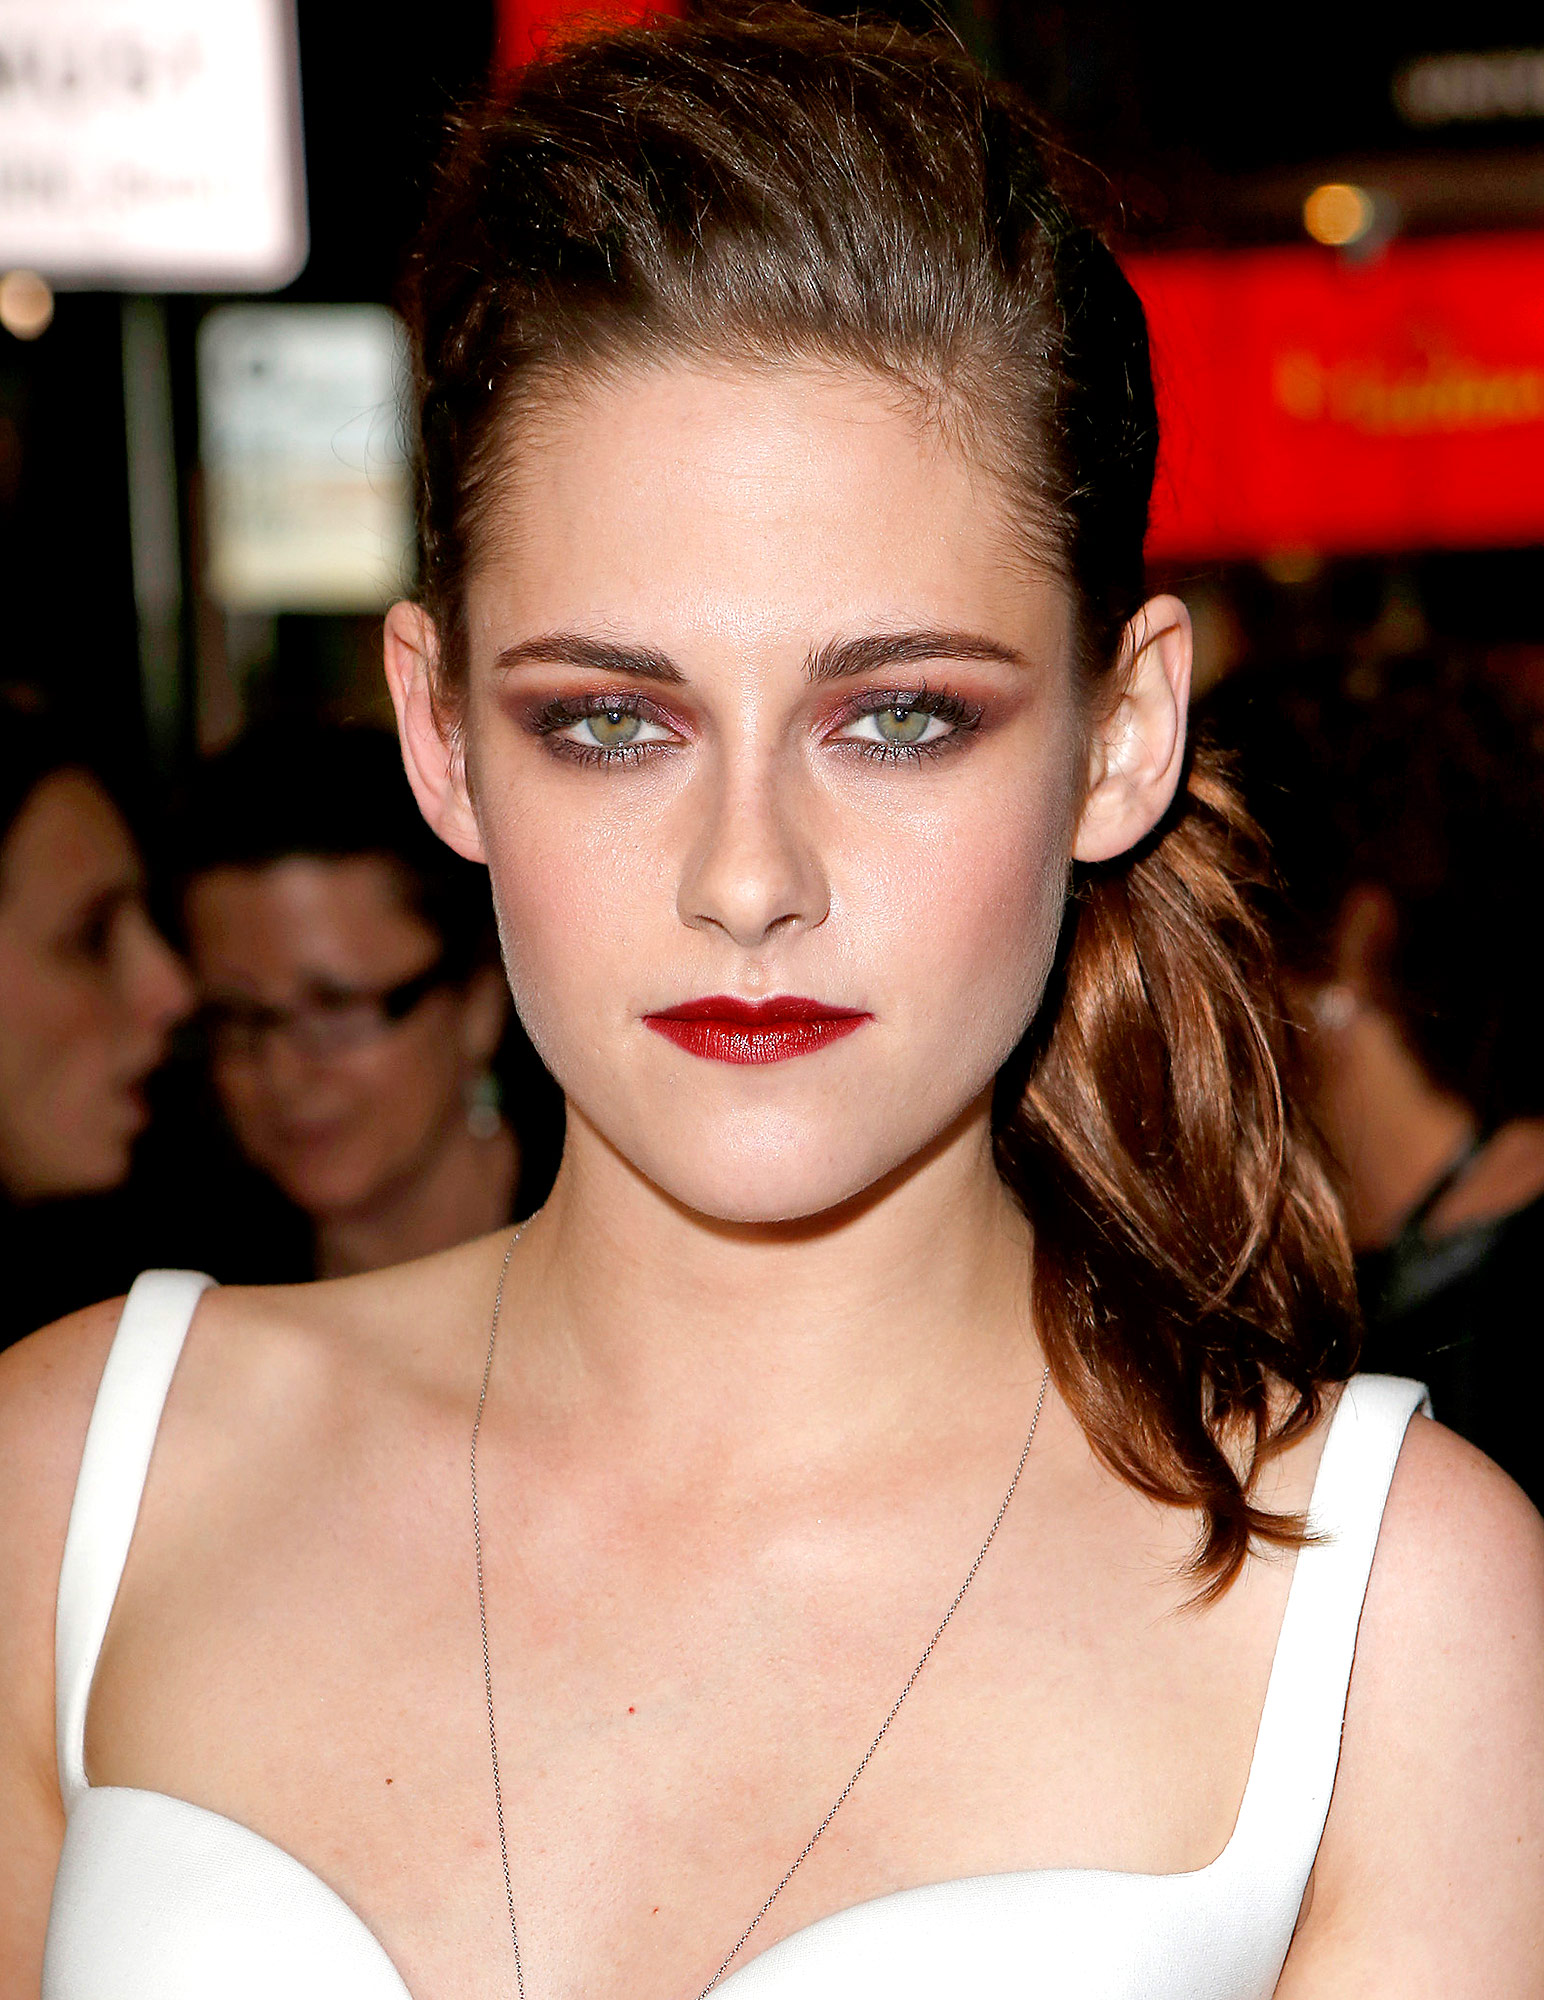 """HOLLYWOOD, CA - NOVEMBER 03: Actress Kristen Stewart arrives at the gala screening of """"On The Road"""" during the 2012 AFI Fest at Grauman's Chinese Theatre on November 3, 2012 in Hollywood, California. (Photo by Jeff Vespa/WireImage)"""